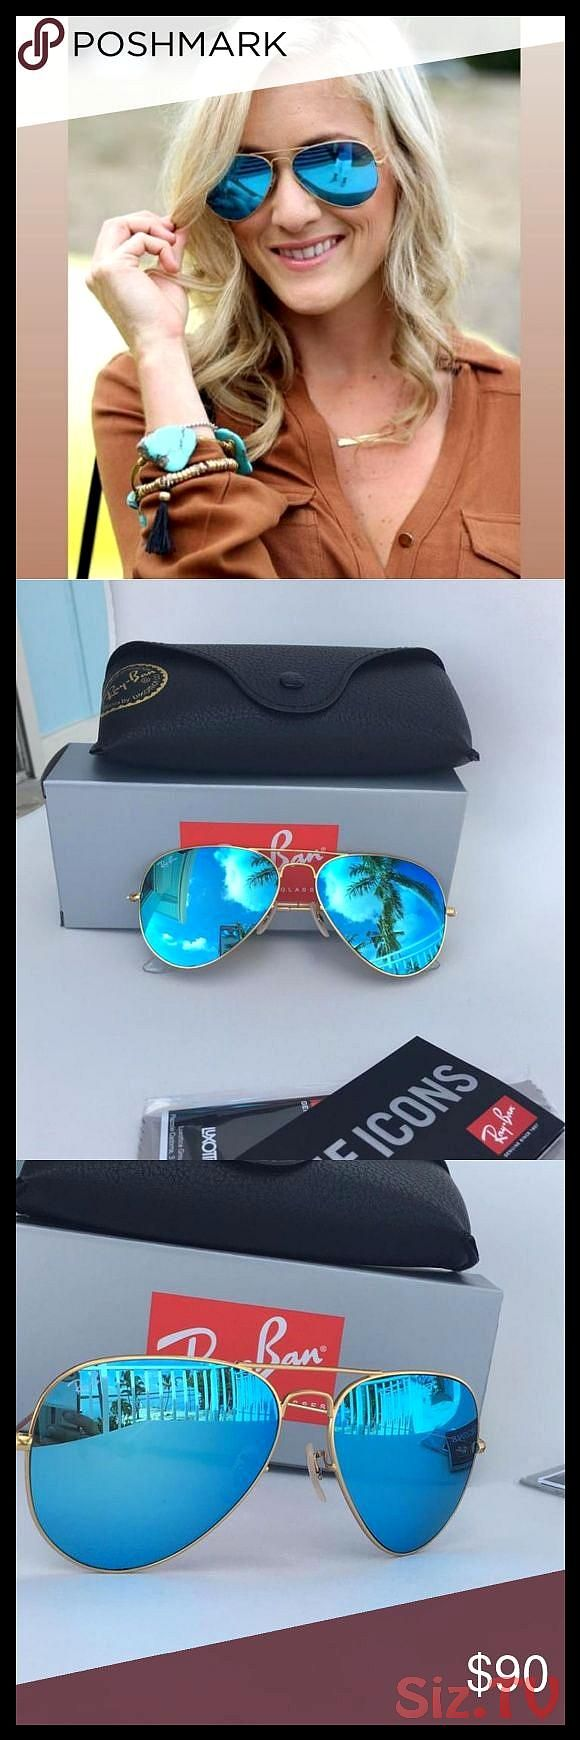 NWT Ray Ban Flash Aviator Turquoise color NWT Ray Ban Flash Aviator Turquoise color Size 58mm Hand made in Italy with Box Case and Cleaning Cloth StNWT Ray Ban Flash Avia...